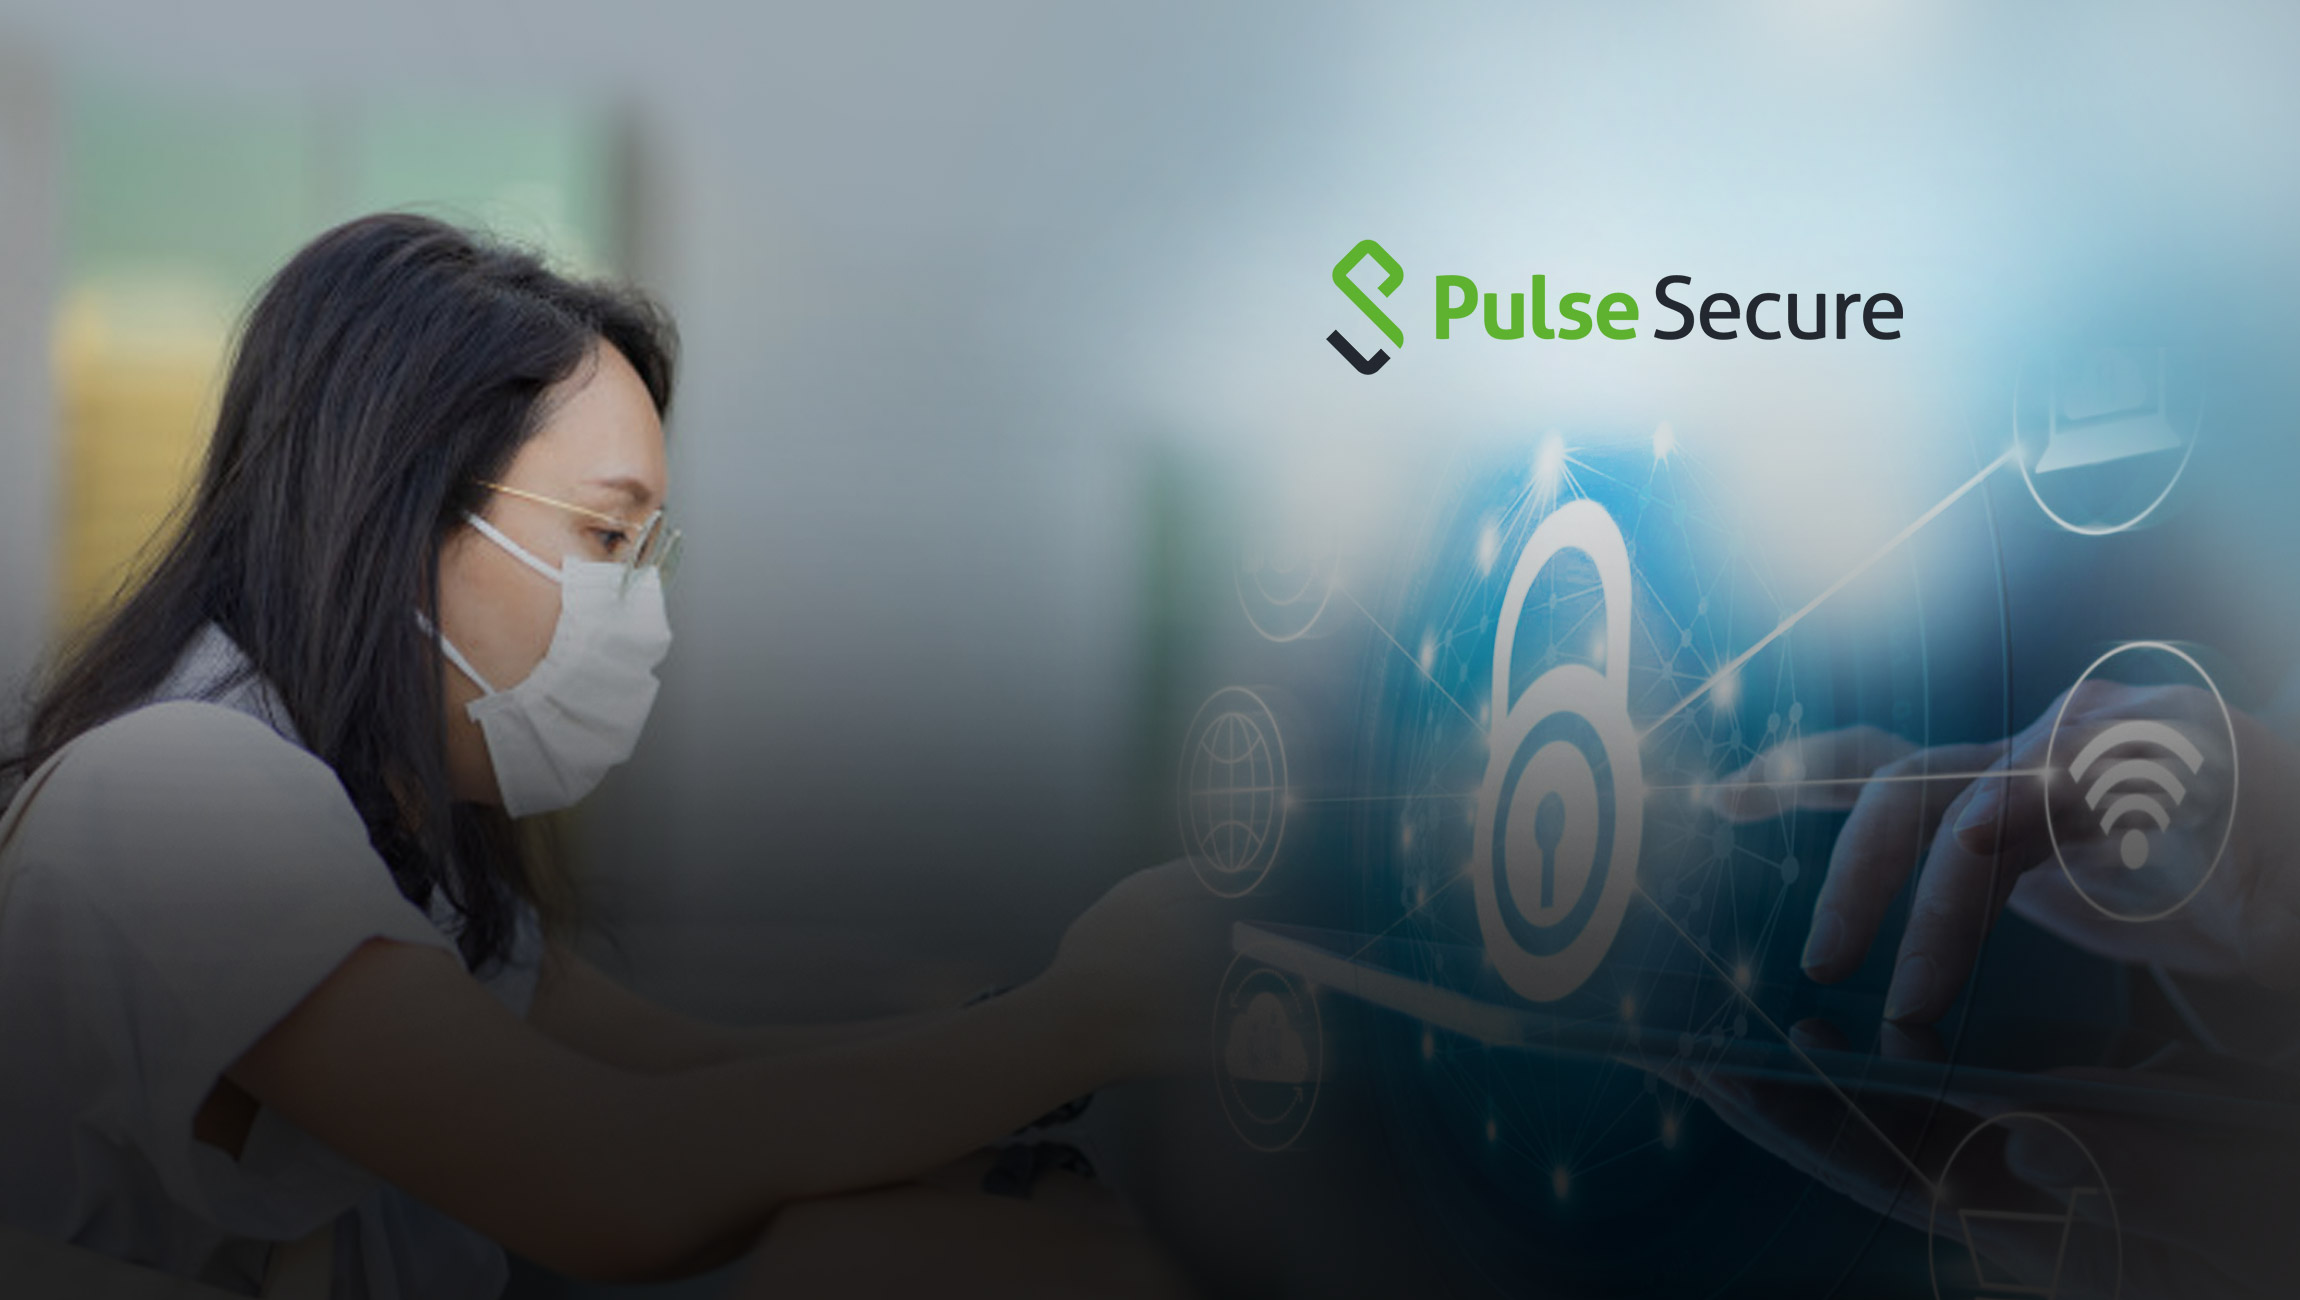 Pulse Secure Offers Free Remote Access Software to Thousands of Employees Working from Home In Asia During The Coronavirus Health Crisis